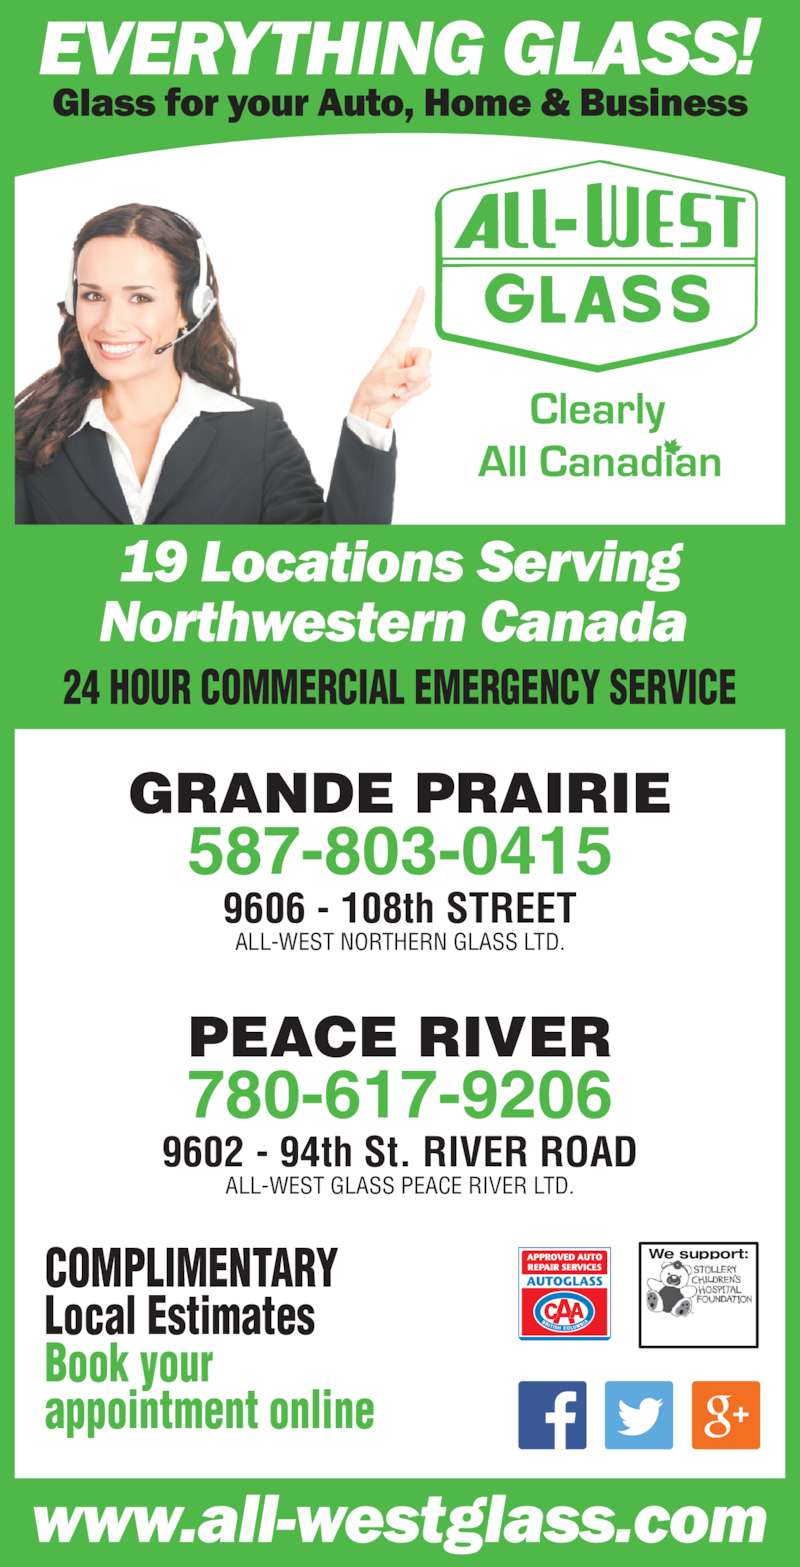 All-West Glass (780-532-4711) - Display Ad - 24 HOUR COMMERCIAL EMERGENCY SERVICE COMPLIMENTARY Local Estimates Book your appointment online GRANDE PRAIRIE 587-803-0415 9606 - 108th STREET ALL-WEST NORTHERN GLASS LTD. PEACE RIVER 780-617-9206 9602 - 94th St. RIVER ROAD ALL-WEST GLASS PEACE RIVER LTD. We support: